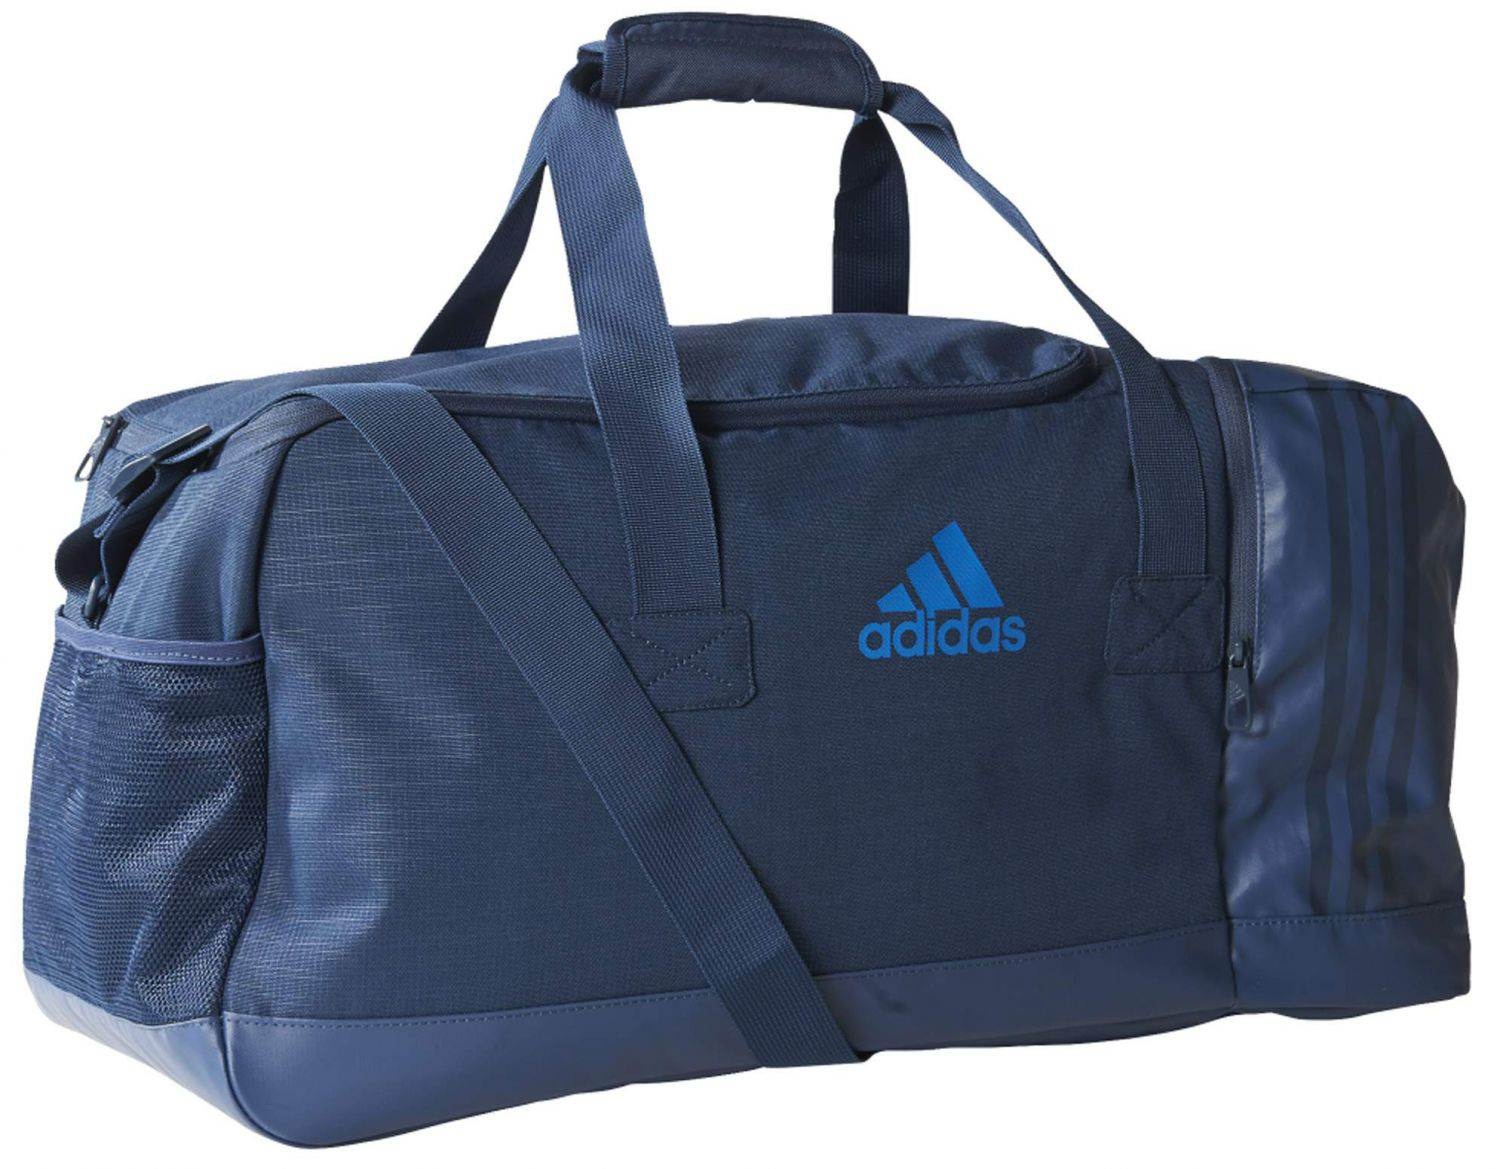 Komptendorf Angebote adidas 3S Performance Teambag M Tasche (Farbe: mineral blue s16/mineral s16/shock s16)